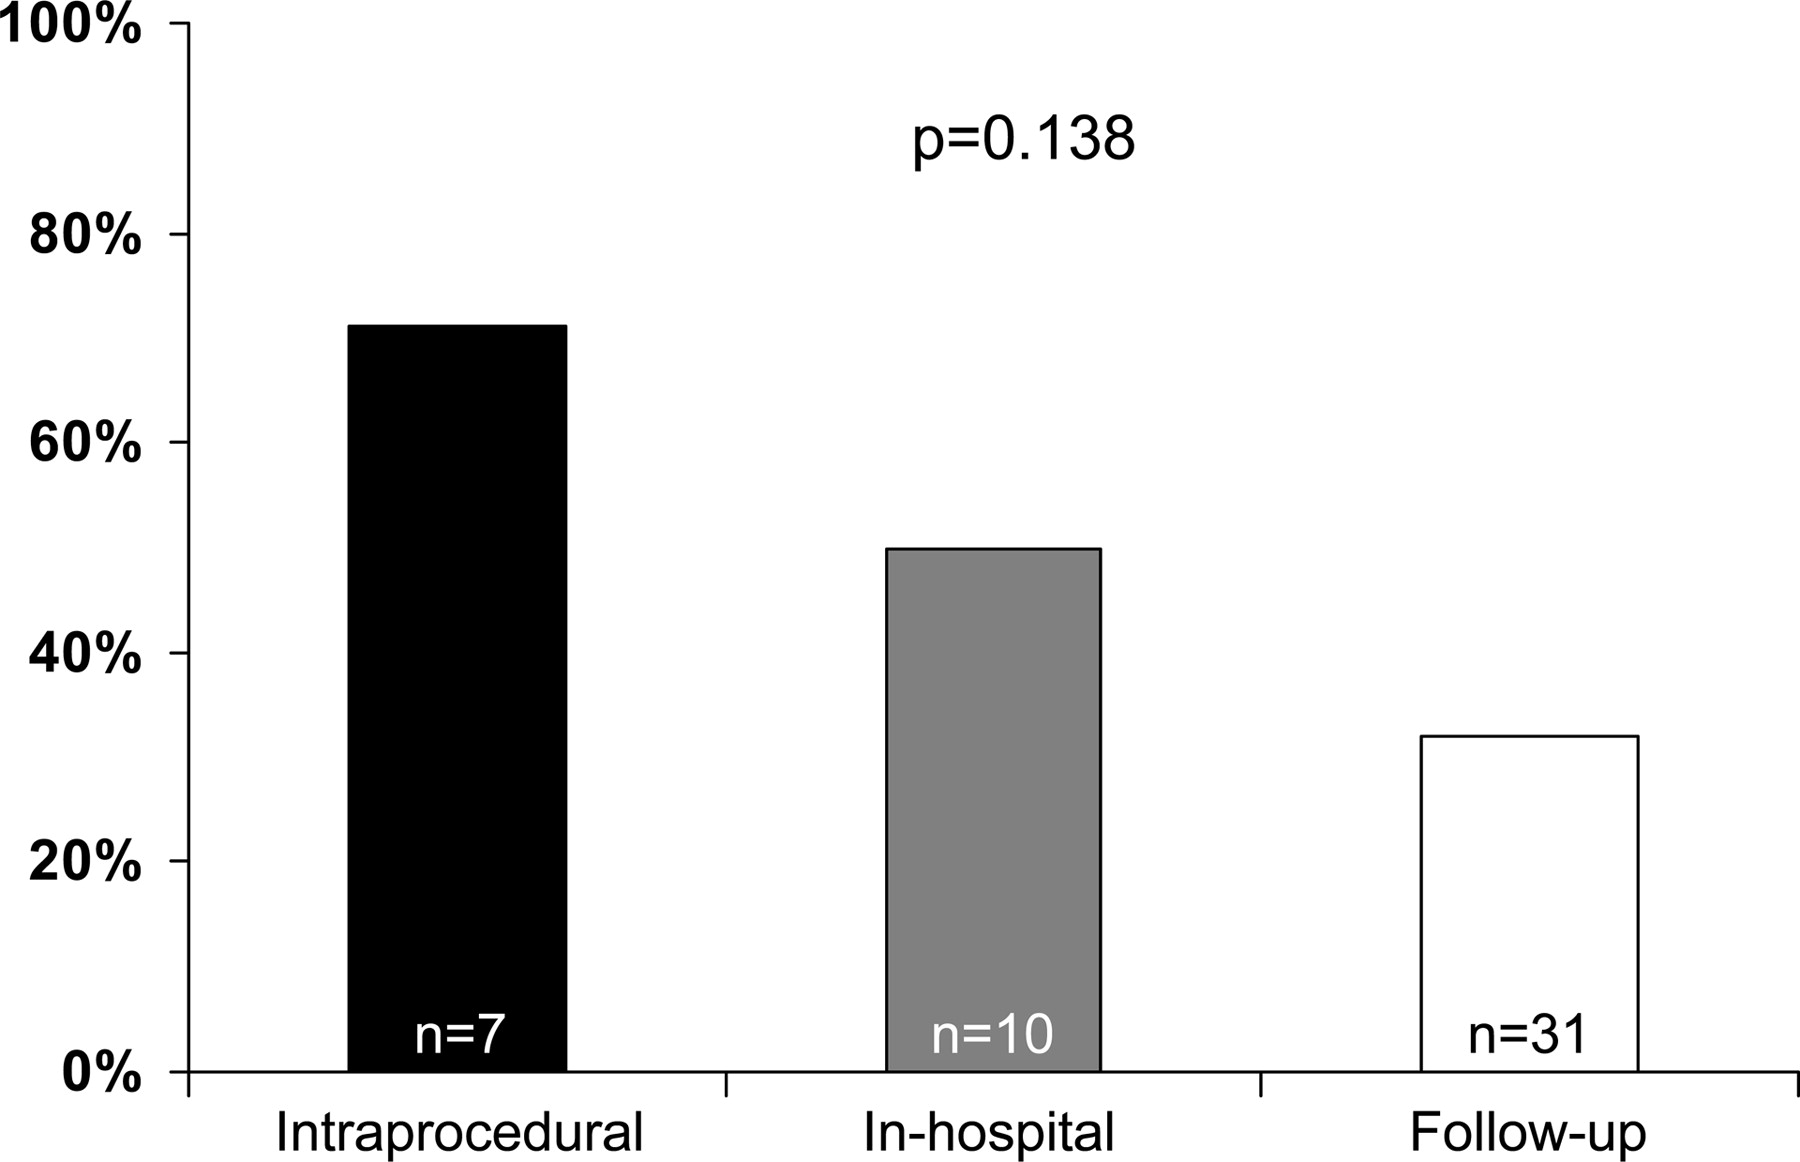 Retrograde Ascending Aortic Dissection During or After